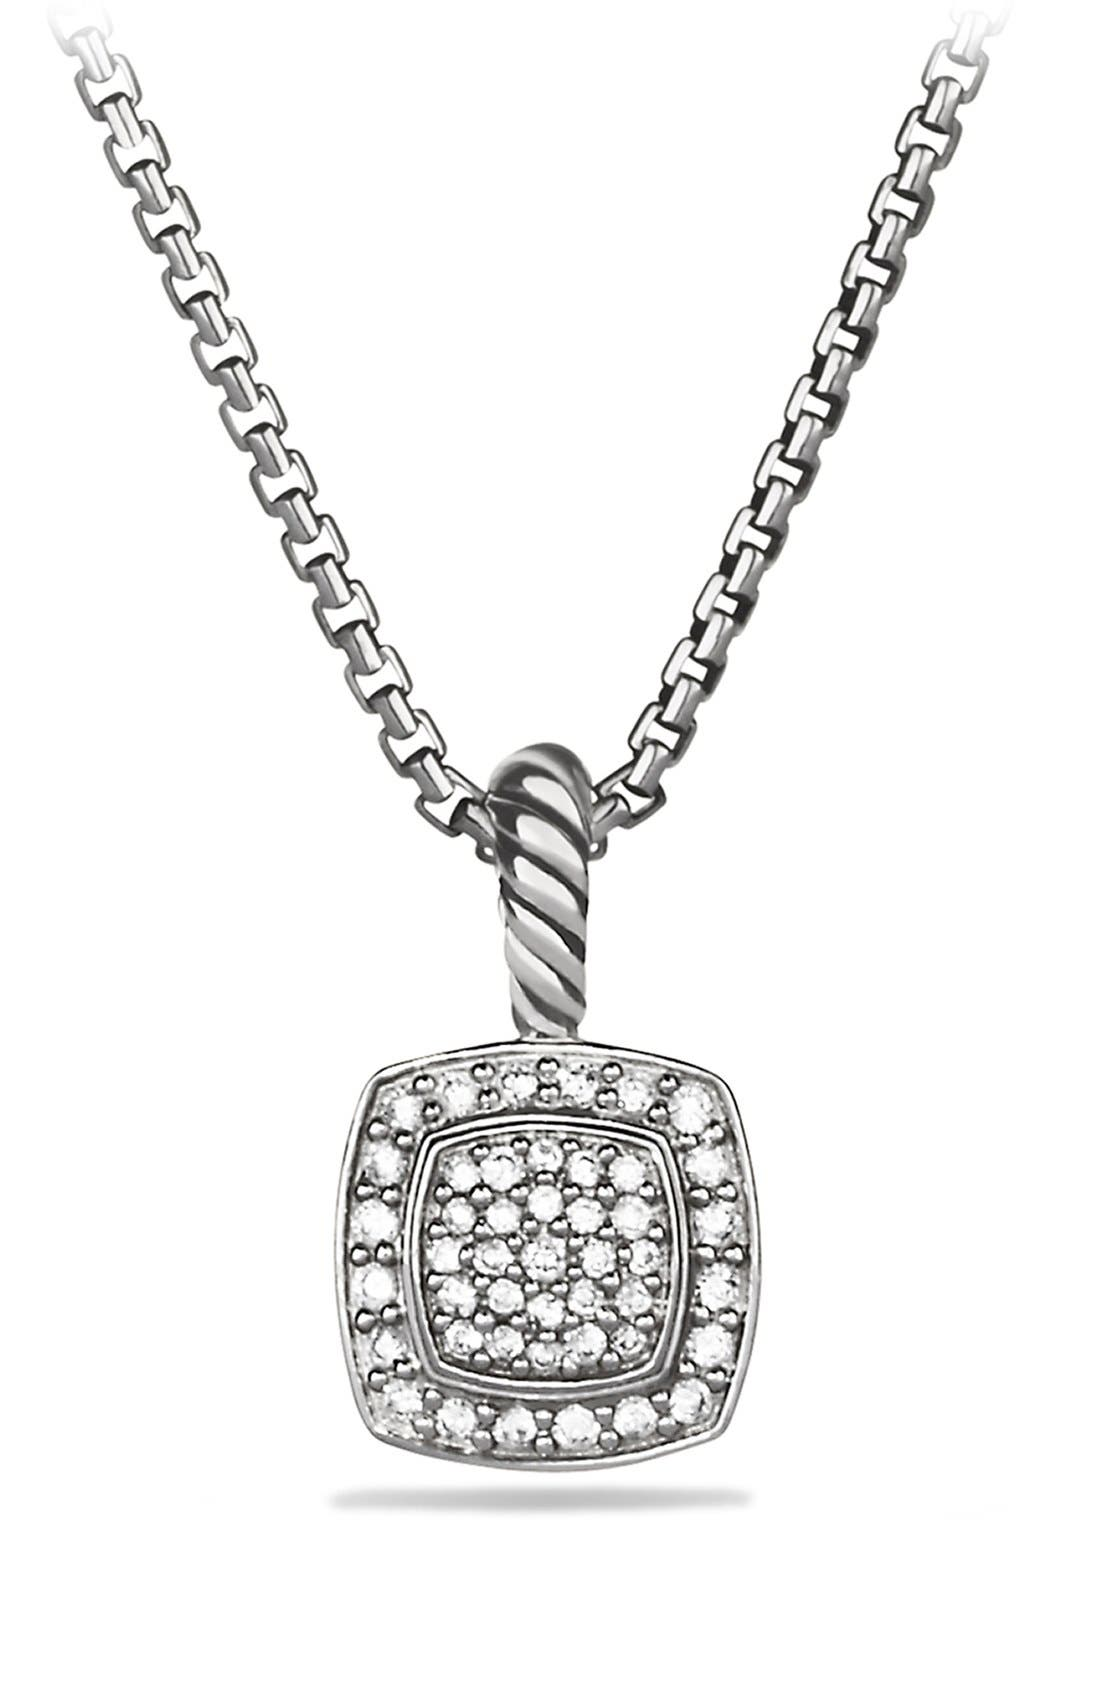 David Yurman 'Albion' Petite Pendant with Diamonds on Chain